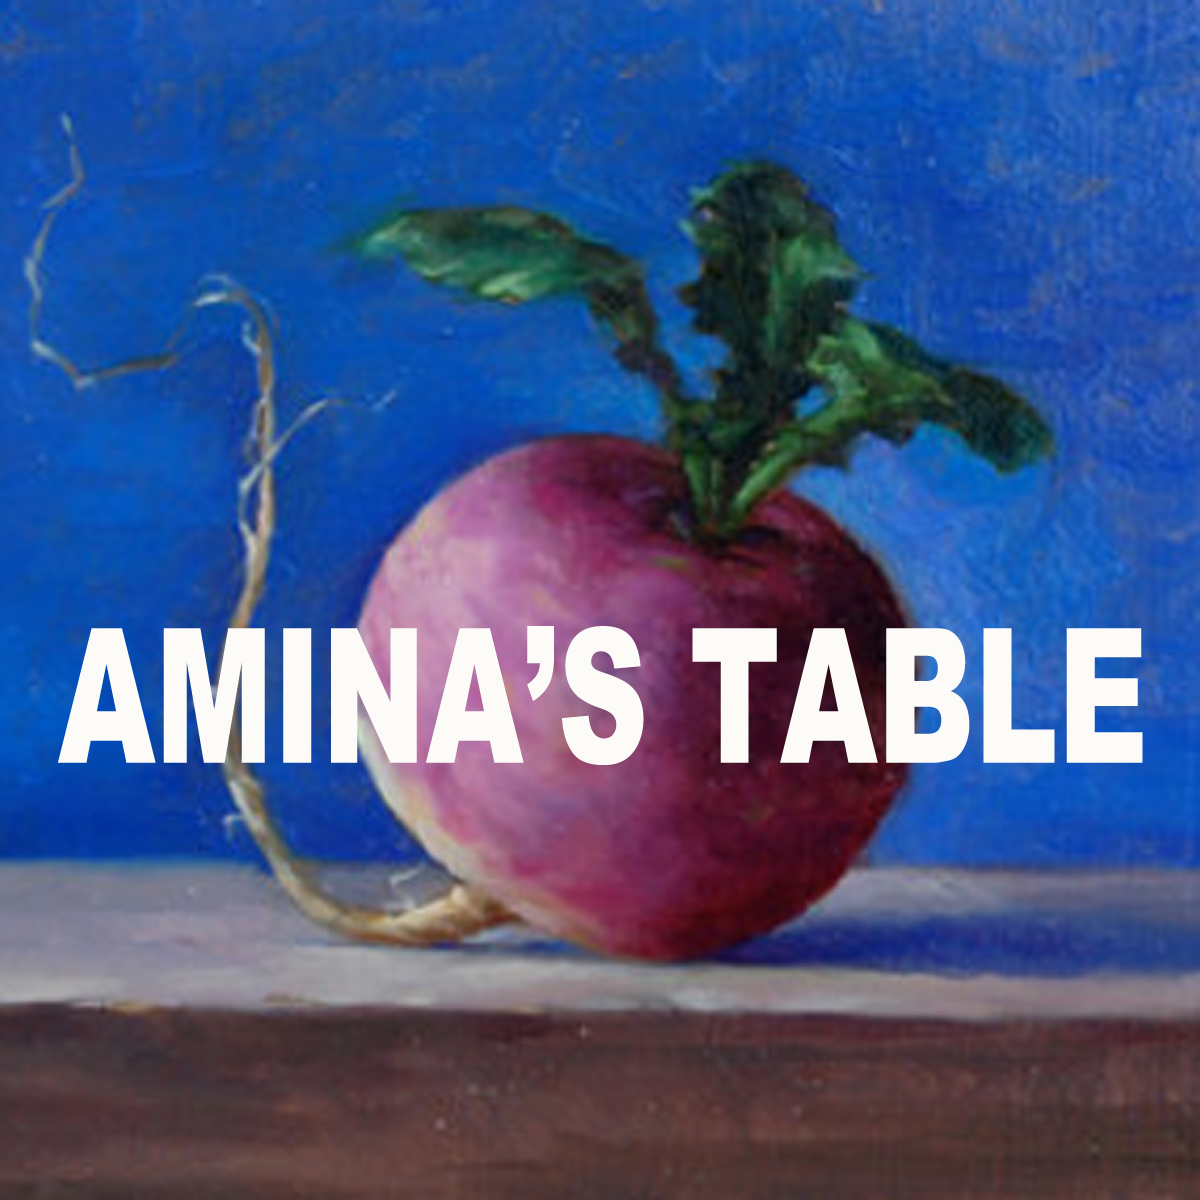 AMINAS TABLE.jpg